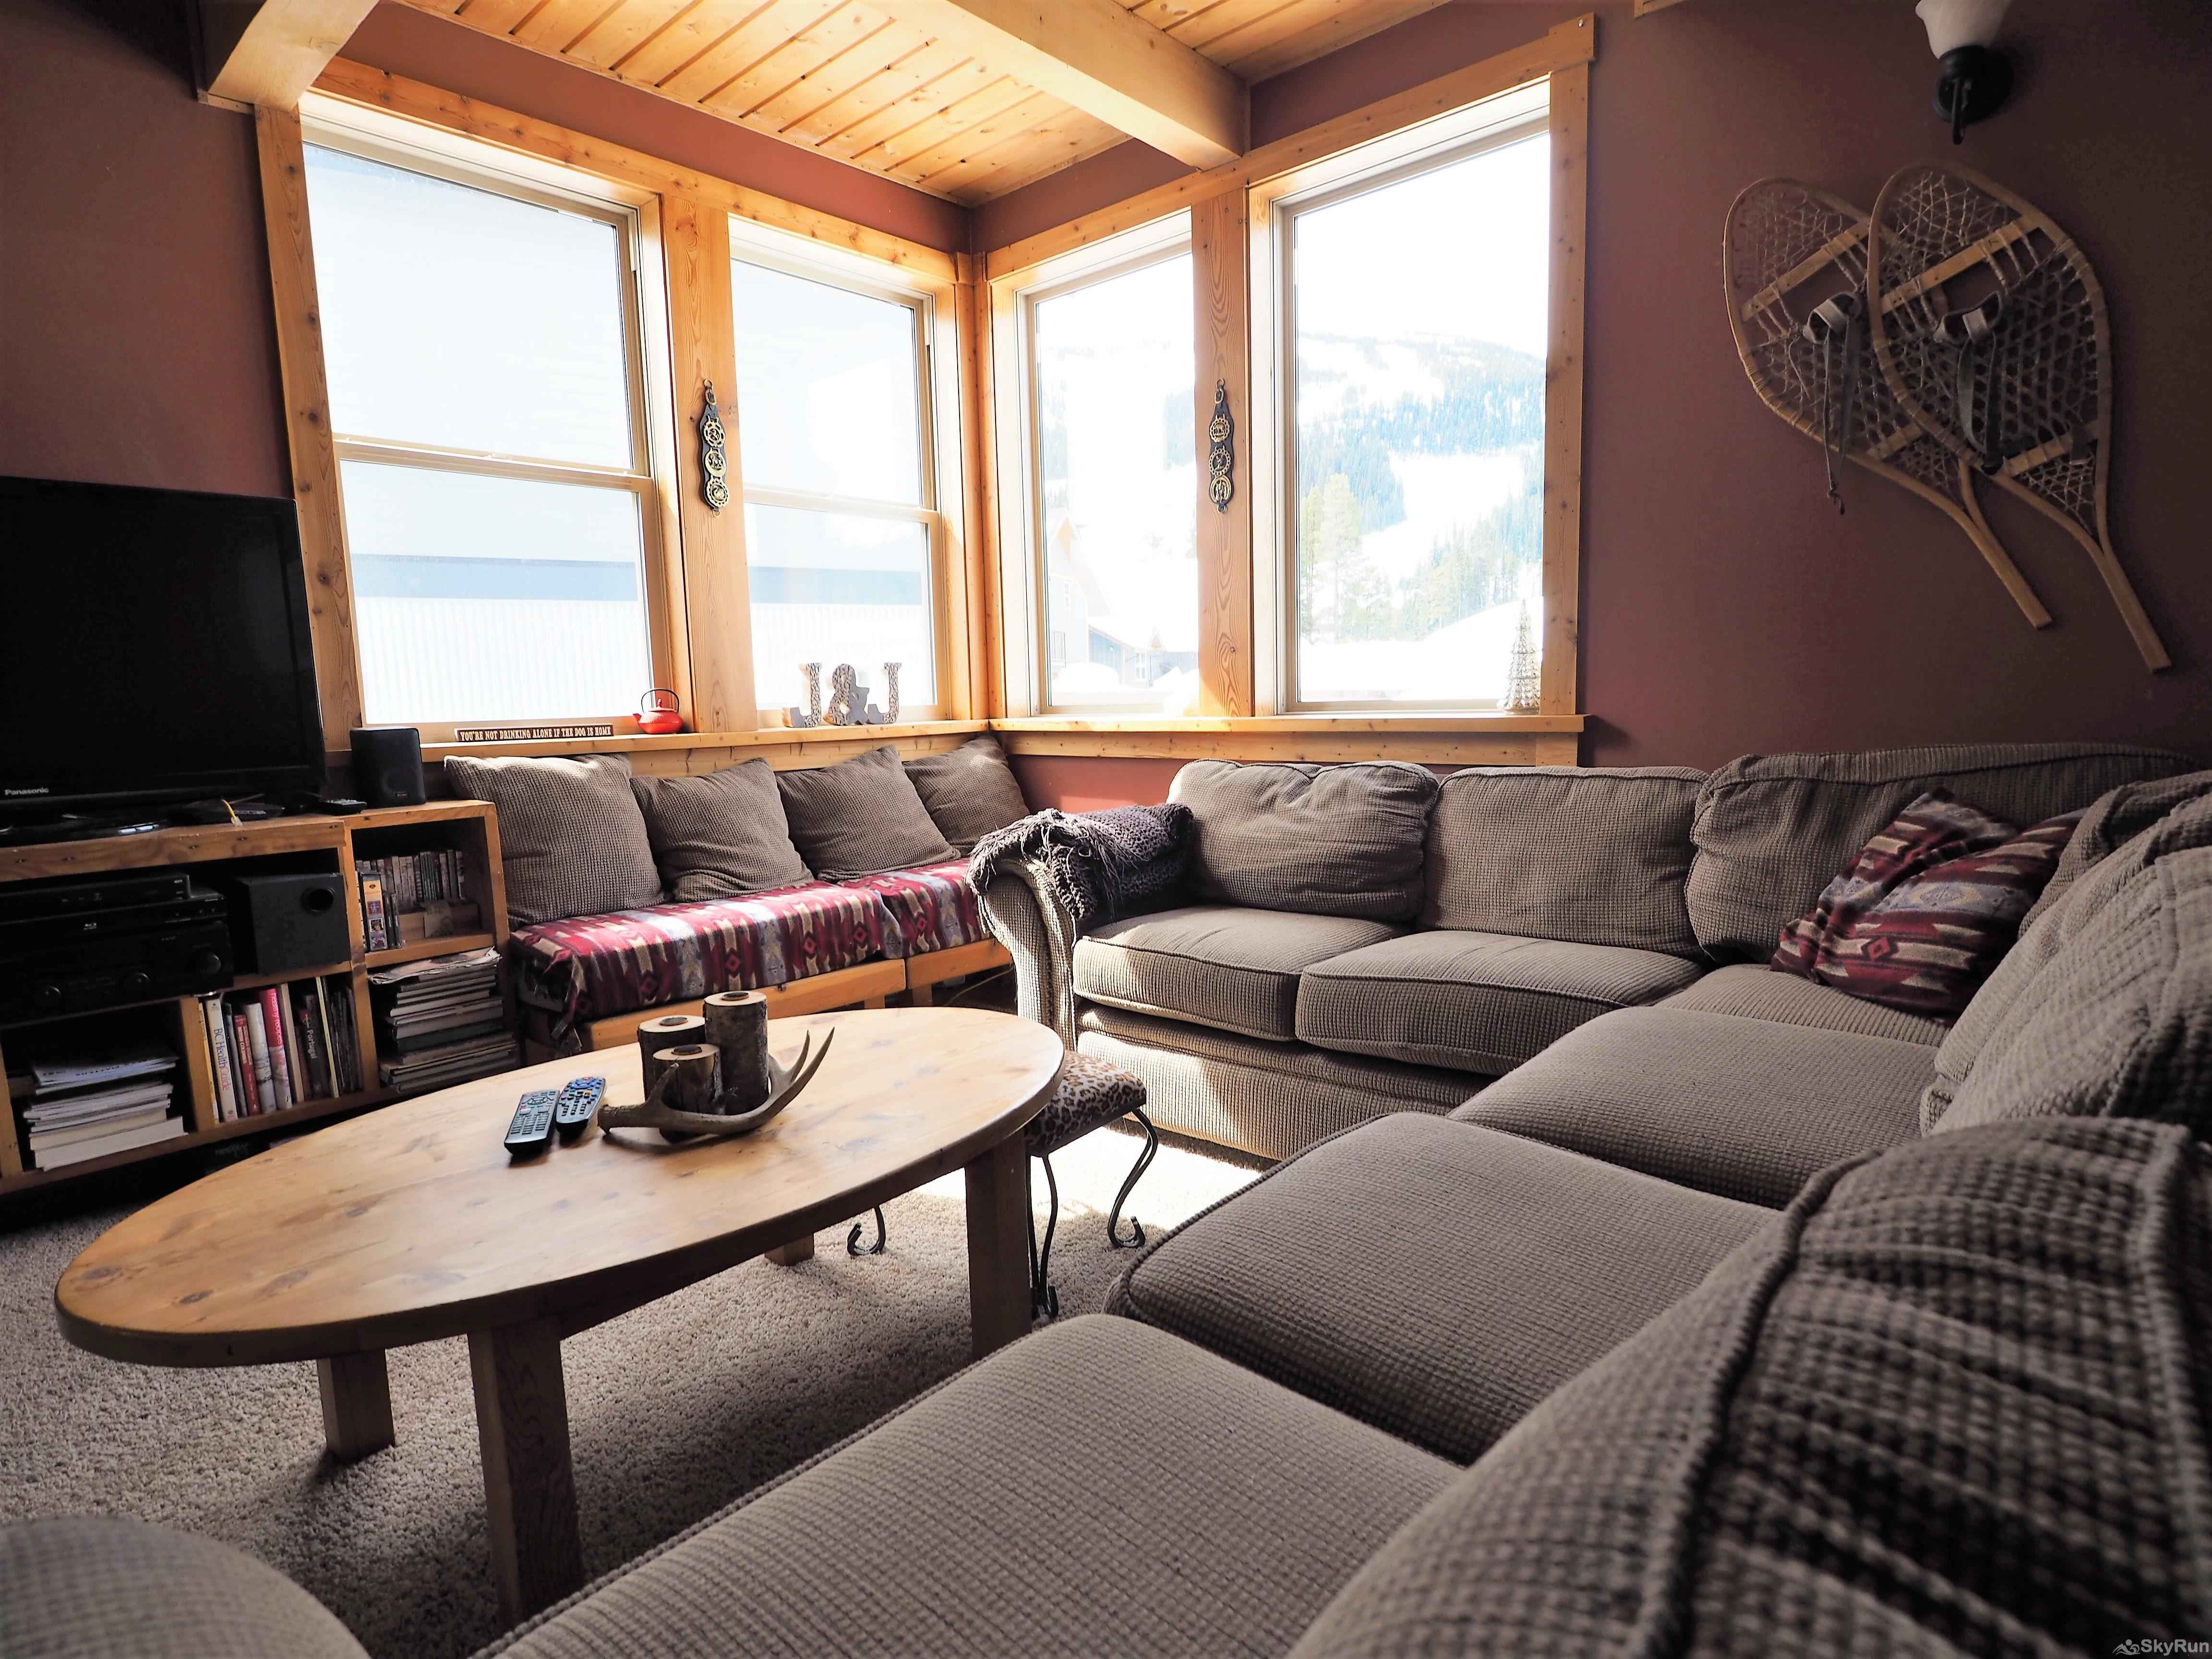 Wildside at Apex The large sectional couch can be hard to leave with the amazing views and warm wood fire place